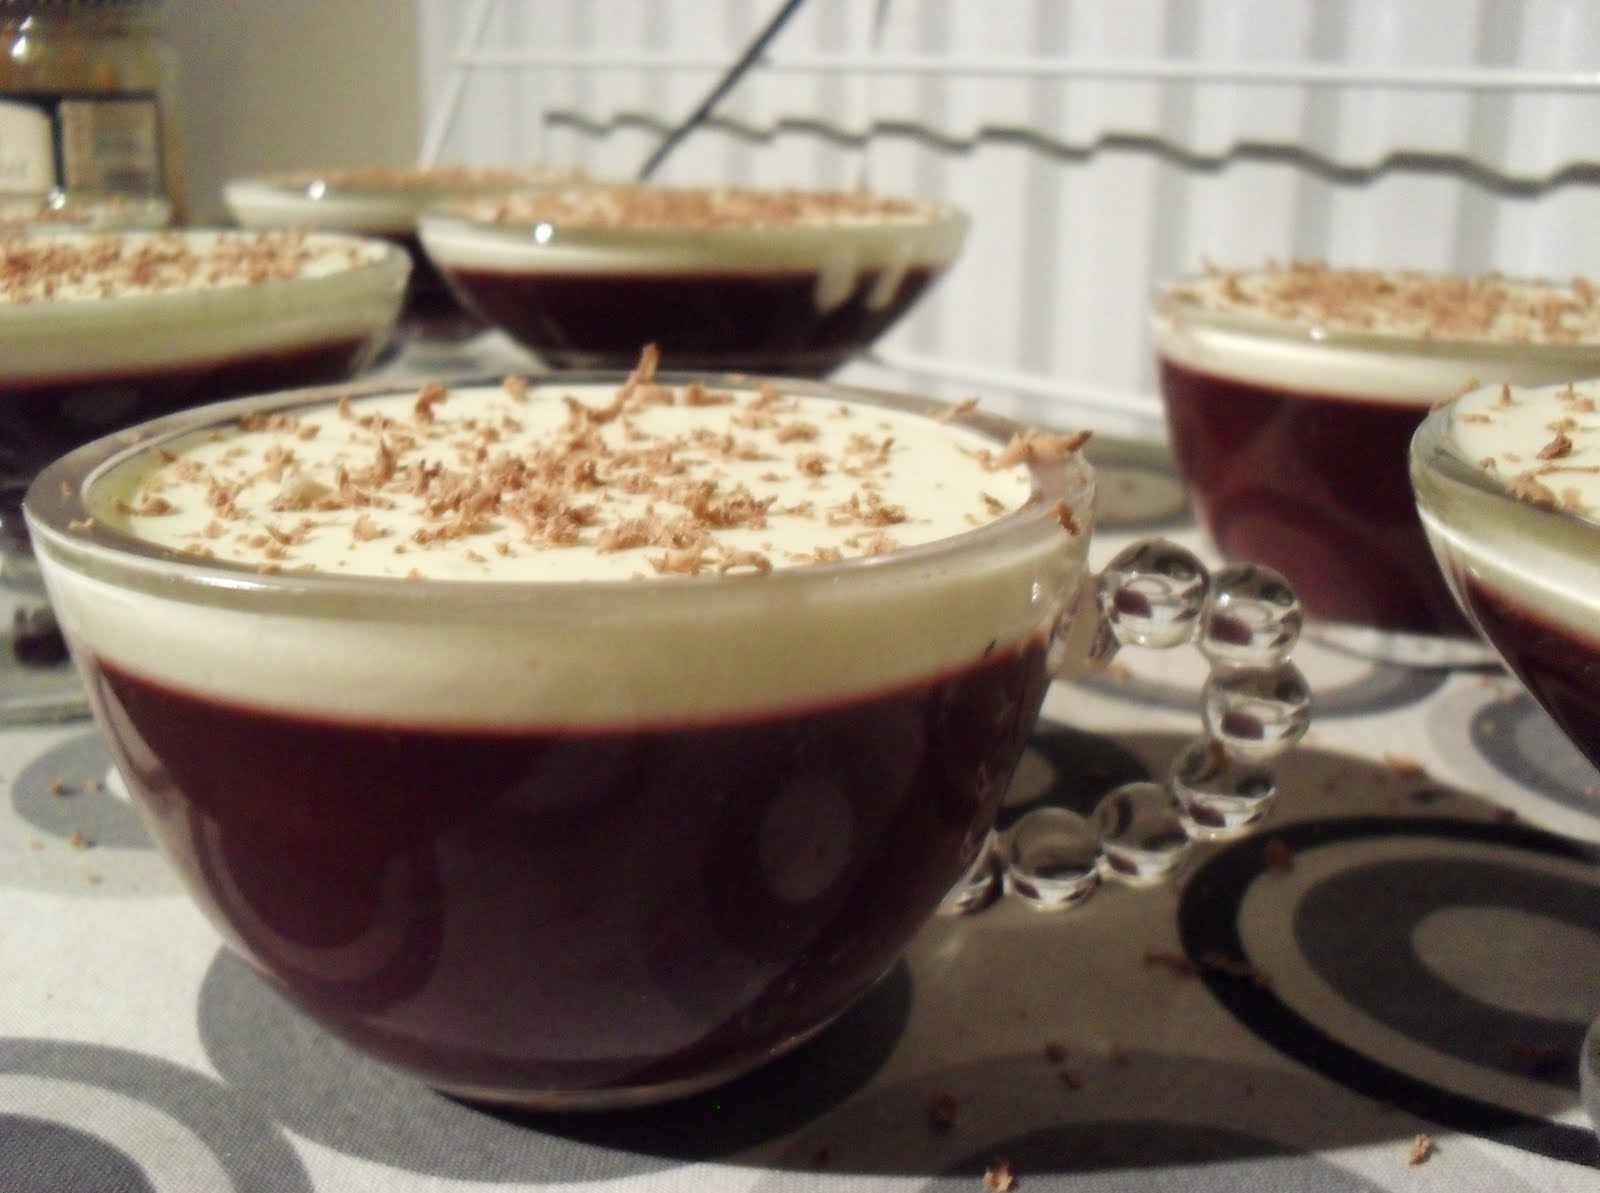 Mulled Wine Jelly Desserts | Knitting on Trains